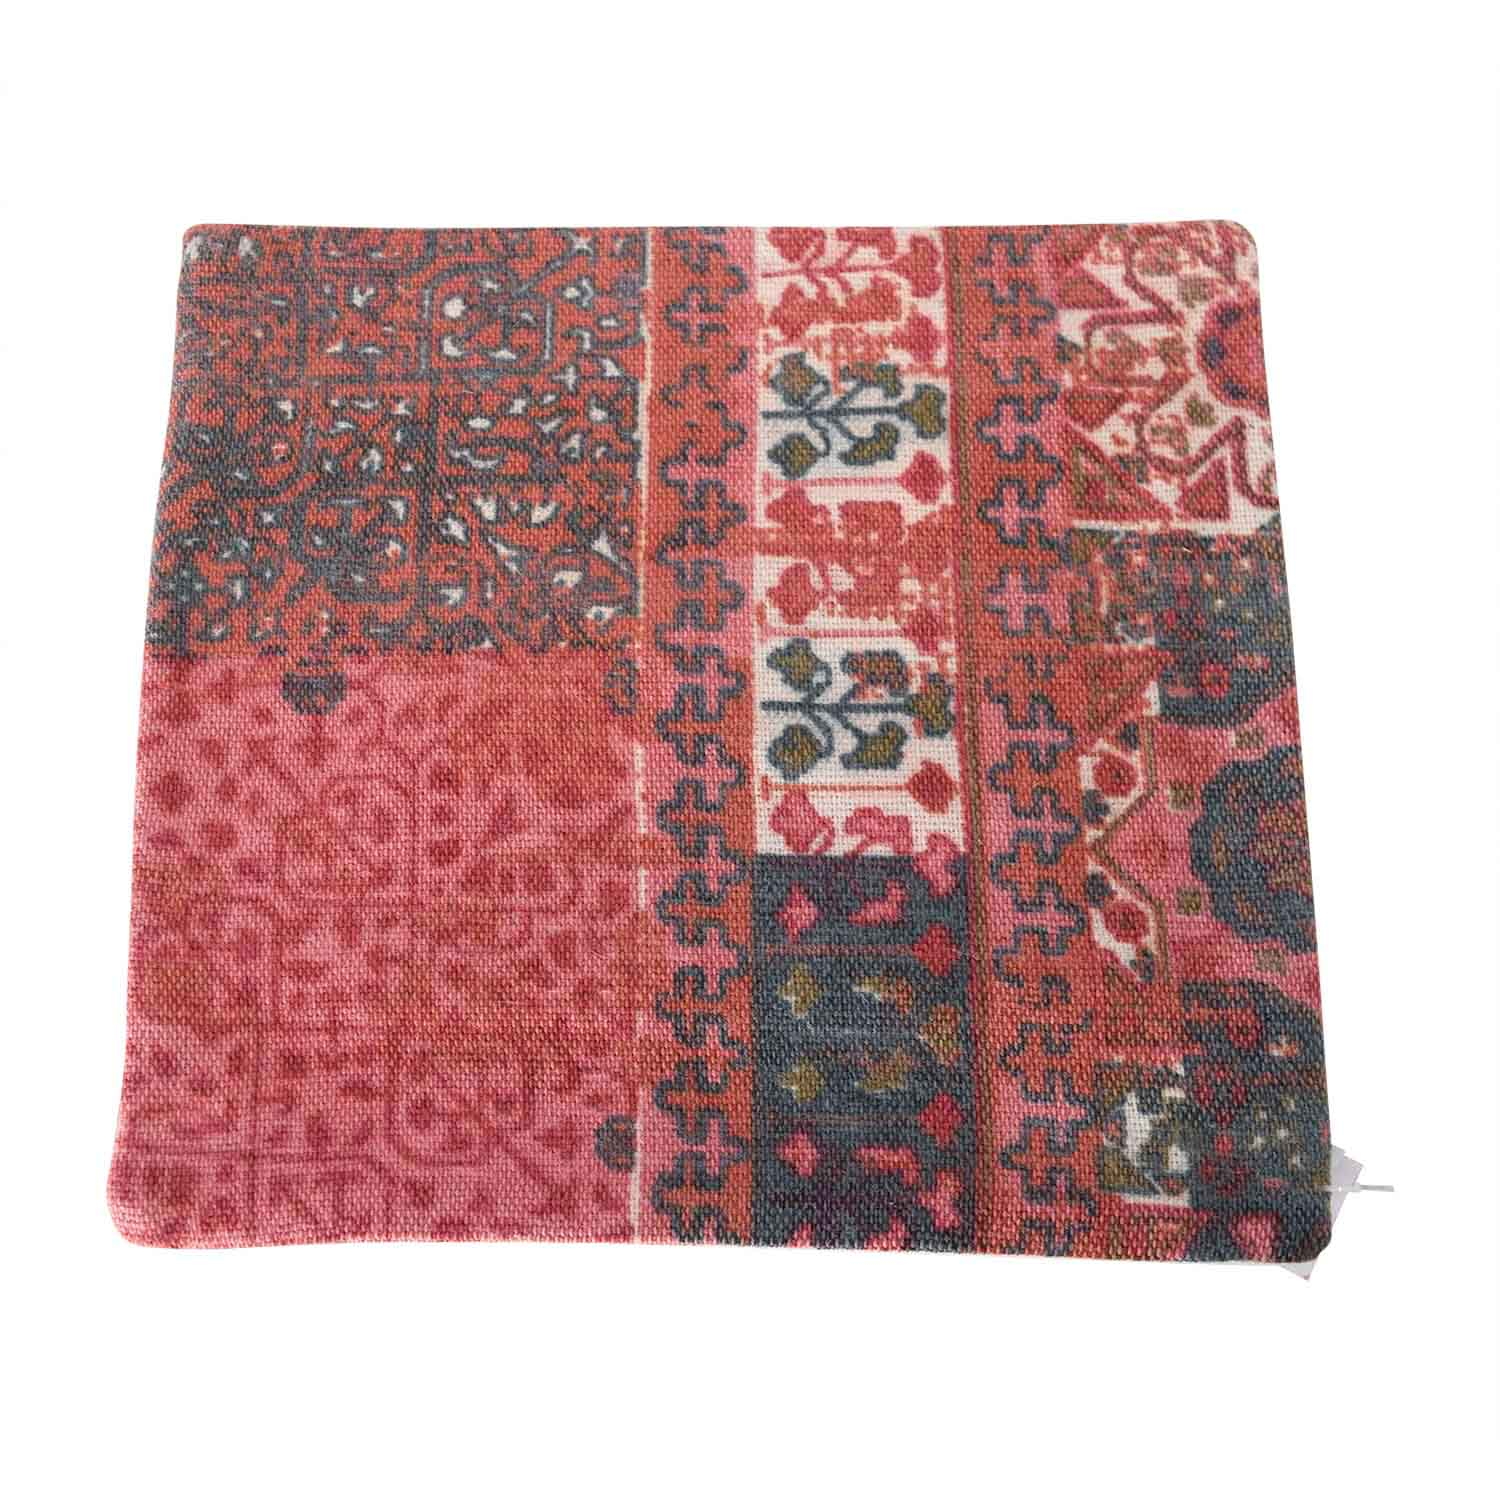 Obeetee Obeetee Red and Black Cushion Cover on sale